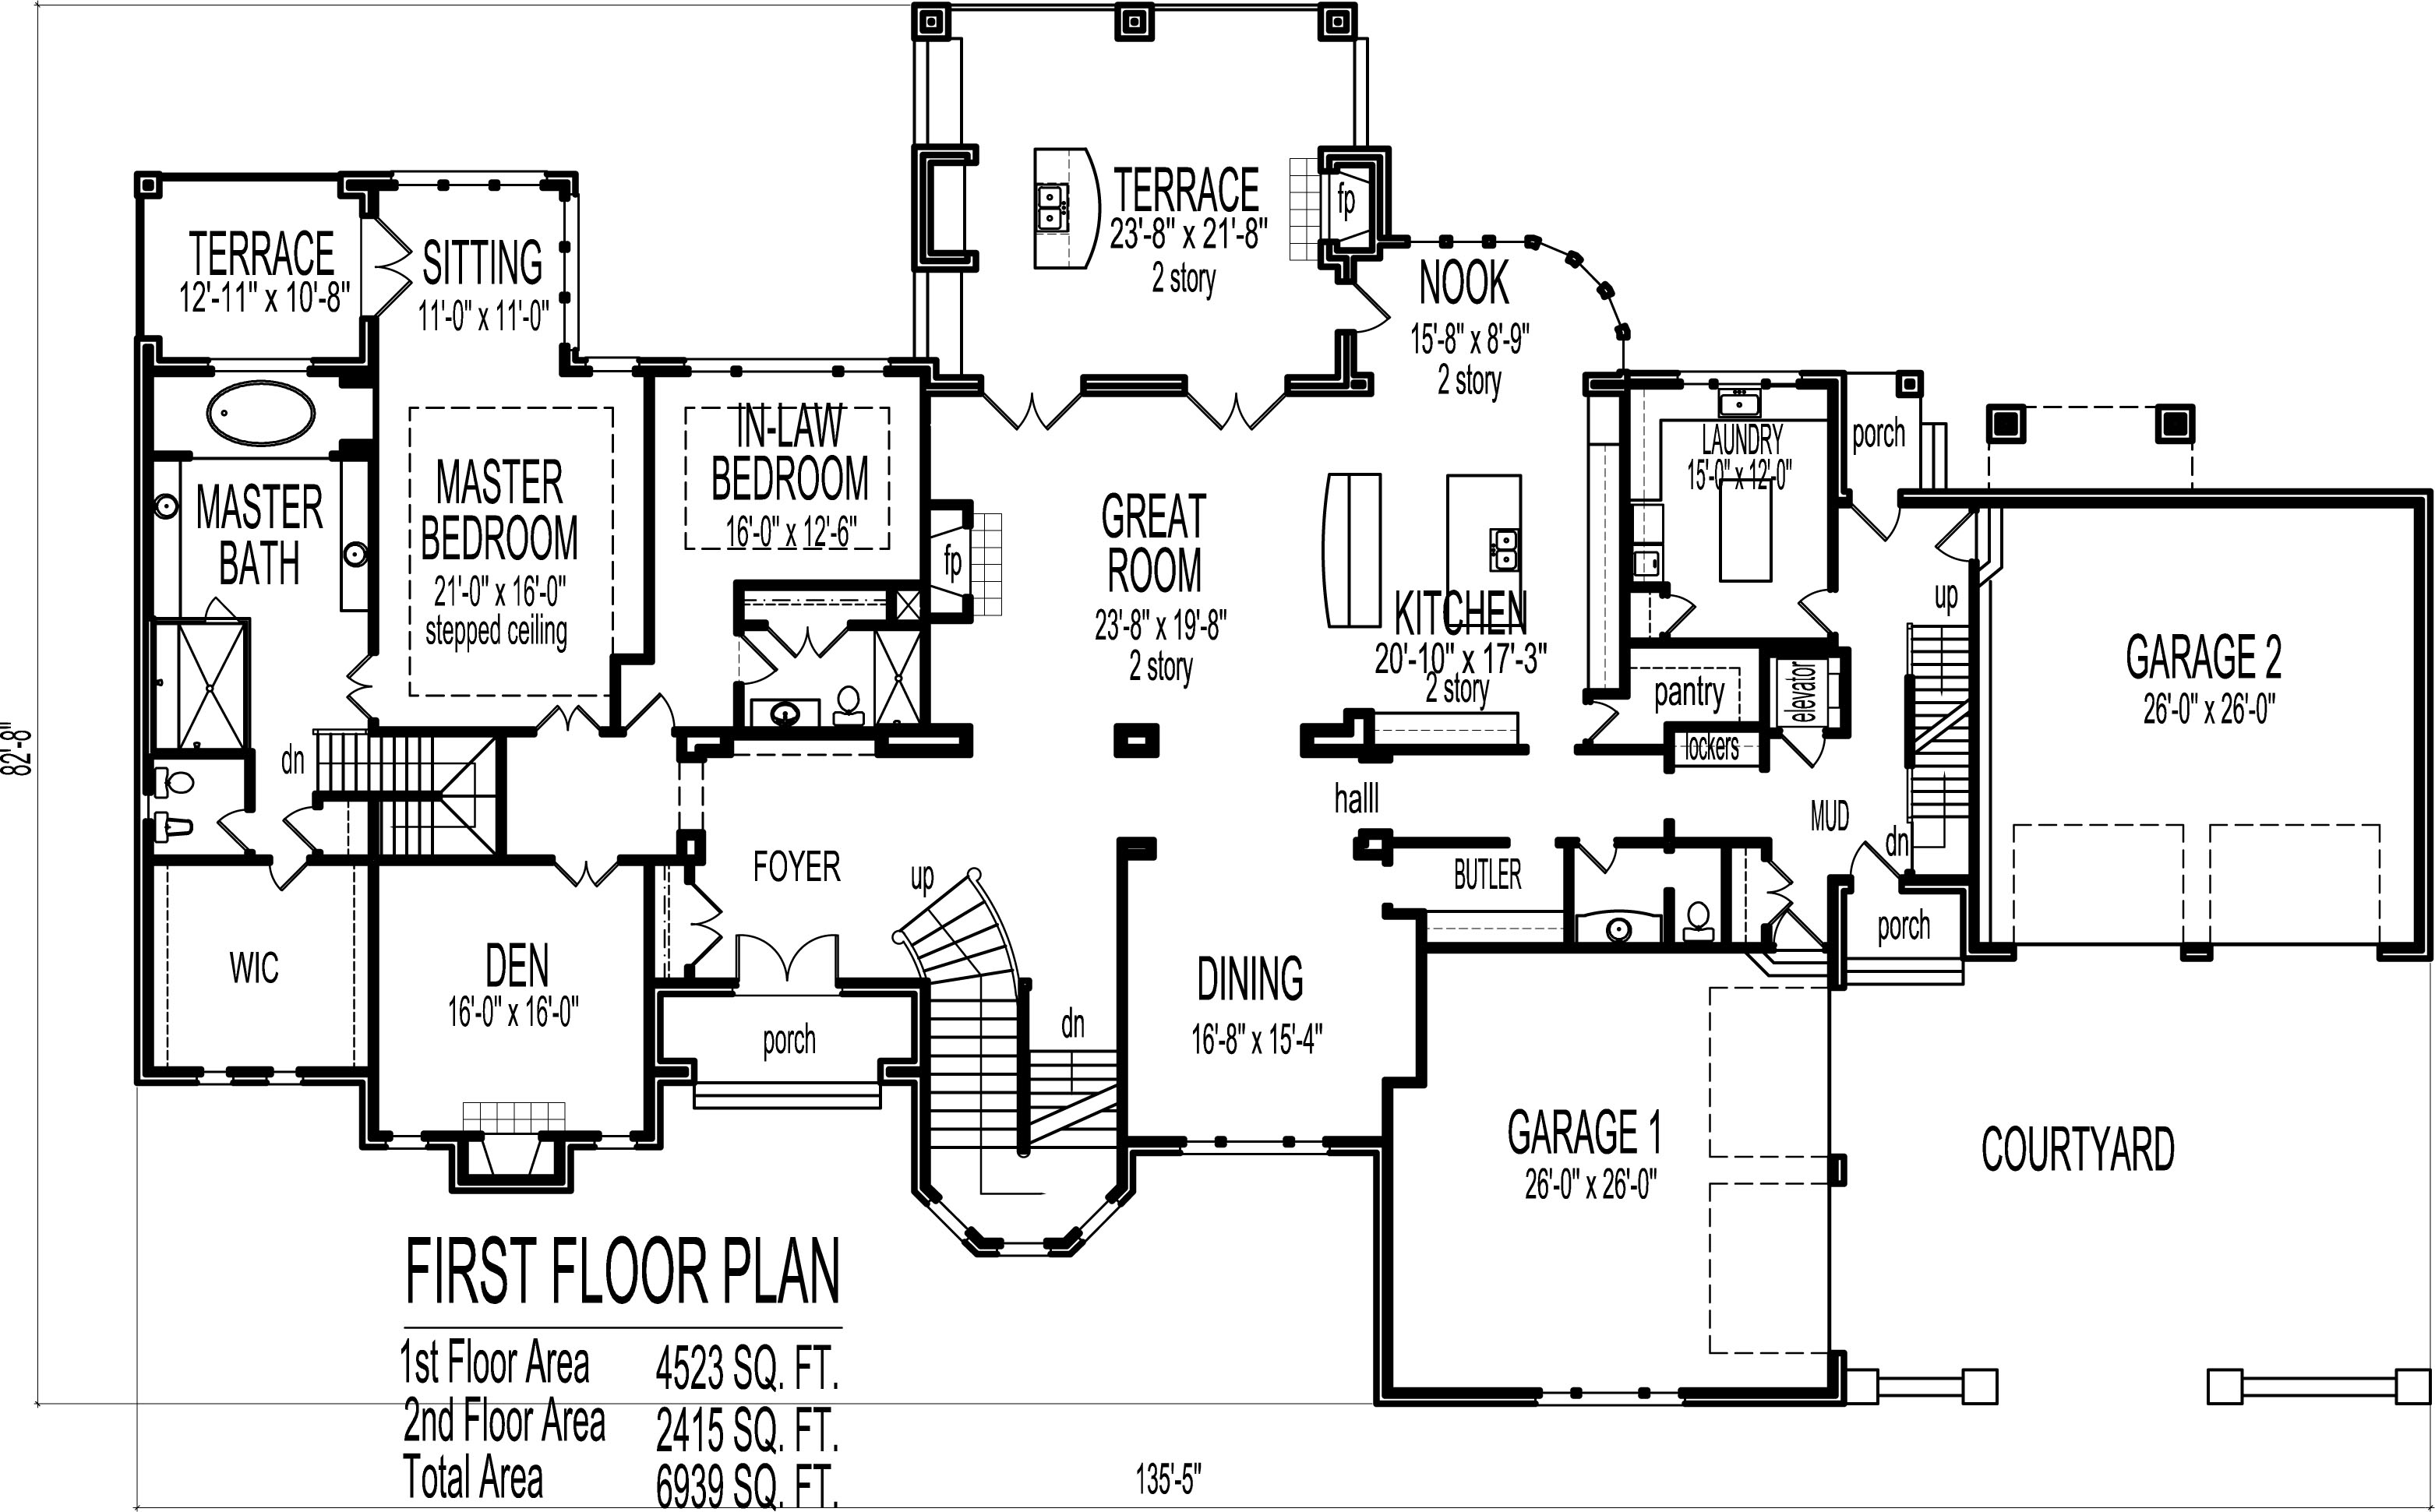 Mansion house floor plans blueprints 6 bedroom 2 story for Large house plans